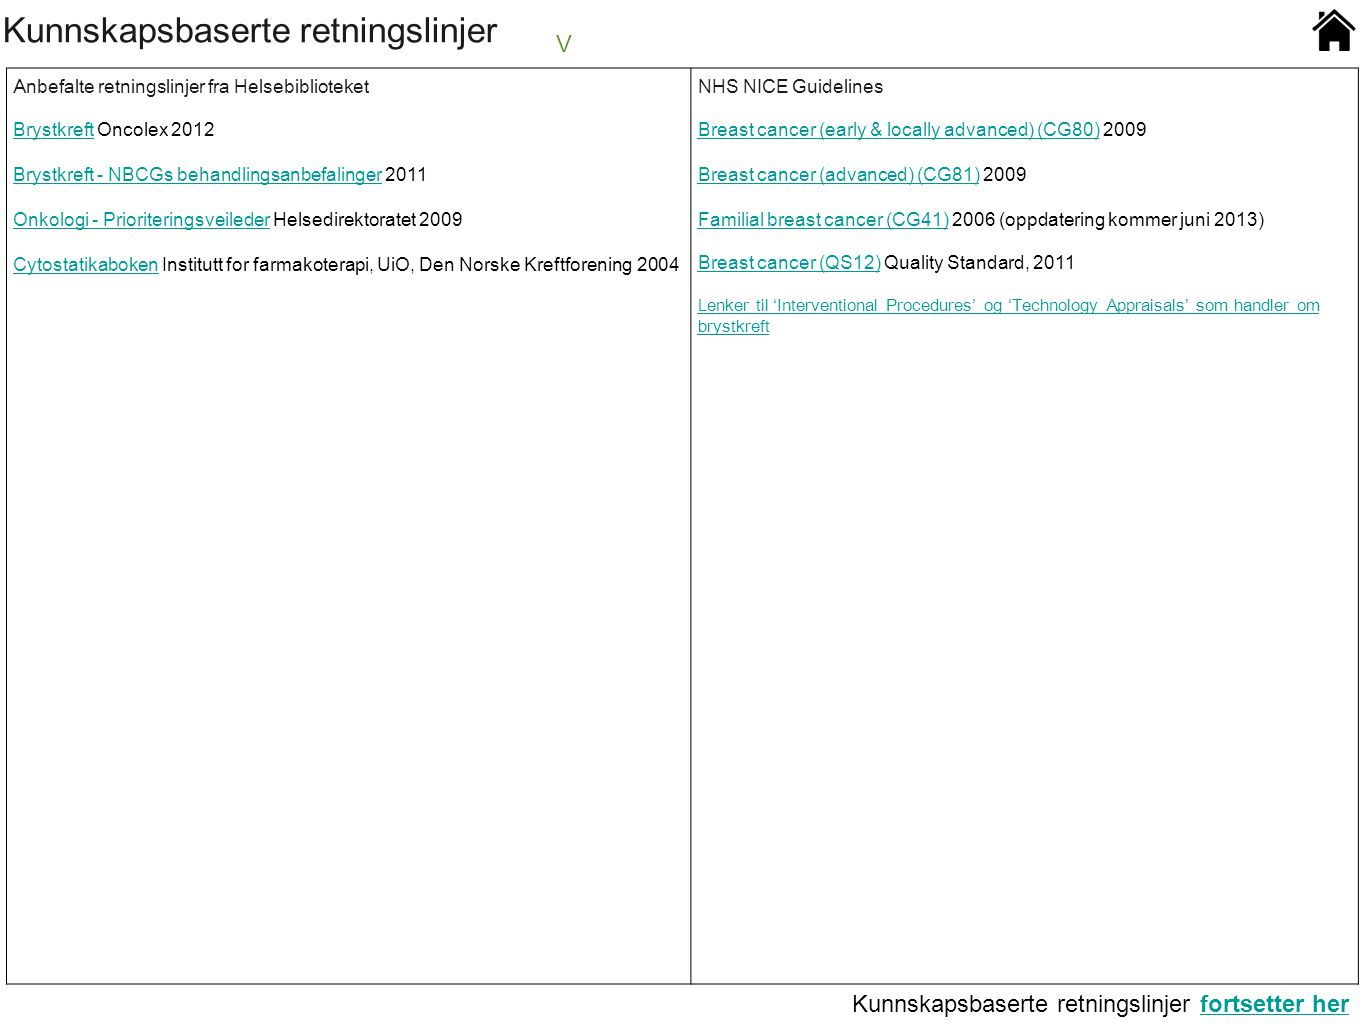 Kunnskapsbaserte retningslinjer V Anbefalte retningslinjer fra Helsebiblioteket BrystkreftBrystkreft Oncolex 2012 Brystkreft - NBCGs behandlingsanbefalingerBrystkreft - NBCGs behandlingsanbefalinger 2011 Onkologi - PrioriteringsveilederOnkologi - Prioriteringsveileder Helsedirektoratet 2009 CytostatikabokenCytostatikaboken Institutt for farmakoterapi, UiO, Den Norske Kreftforening 2004 NHS NICE Guidelines Breast cancer (early & locally advanced) (CG80)Breast cancer (early & locally advanced) (CG80) 2009 Breast cancer (advanced) (CG81)Breast cancer (advanced) (CG81) 2009 Familial breast cancer (CG41)Familial breast cancer (CG41) 2006 (oppdatering kommer juni 2013) Breast cancer (QS12)Breast cancer (QS12) Quality Standard, 2011 Lenker til 'Interventional Procedures' og 'Technology Appraisals' som handler om brystkreft Kunnskapsbaserte retningslinjer fortsetter herfortsetter her